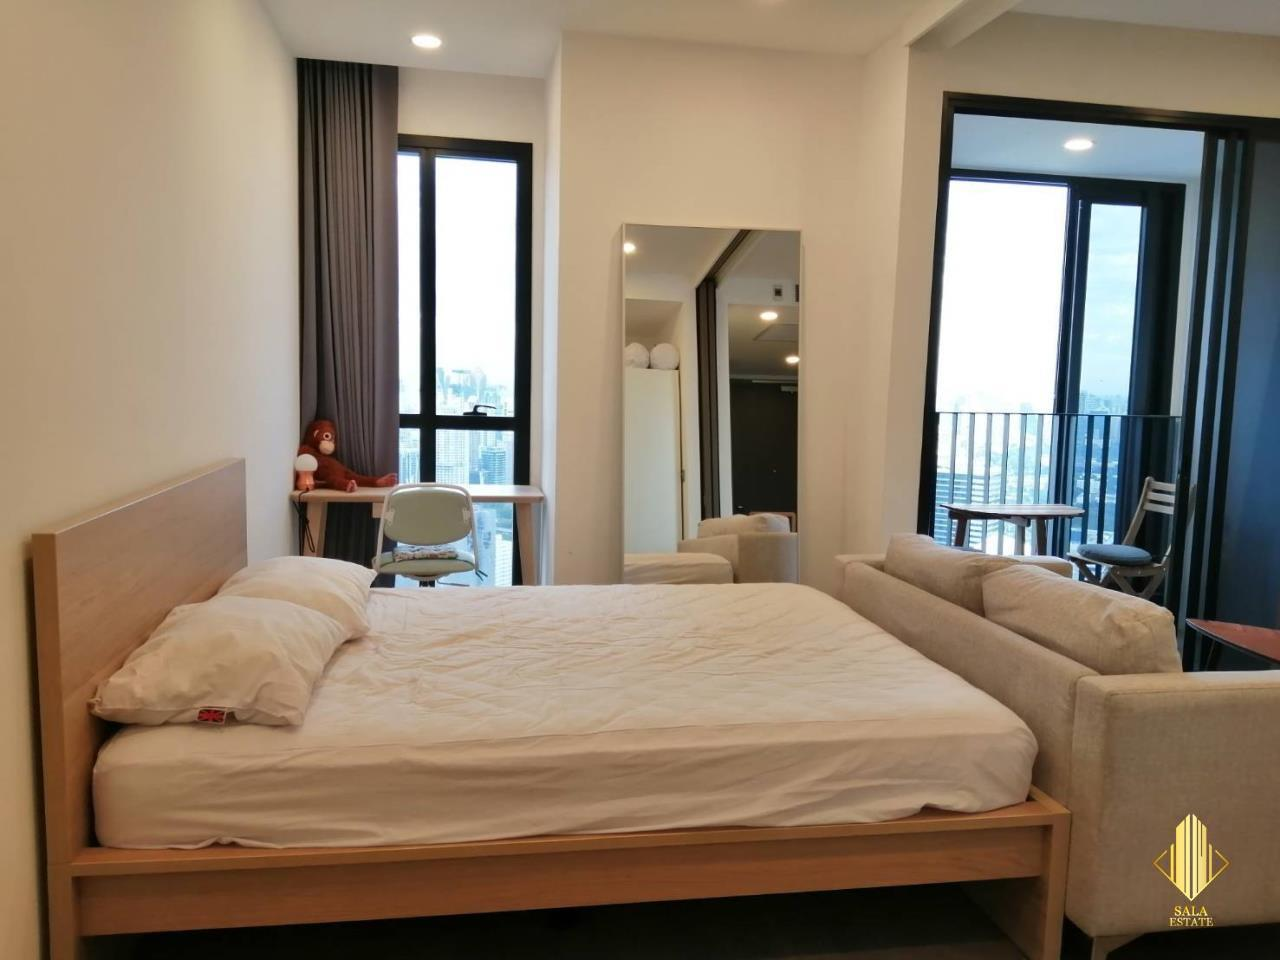 SALA ESTATE Agency's ( FOR RENT ) ASHTON CHULA SILOM – MRT SAMYAN, 40 SQM 1 BEDROOM 1 BEDROOM, FULLY FURNISHED, HIGH FLOOR 5